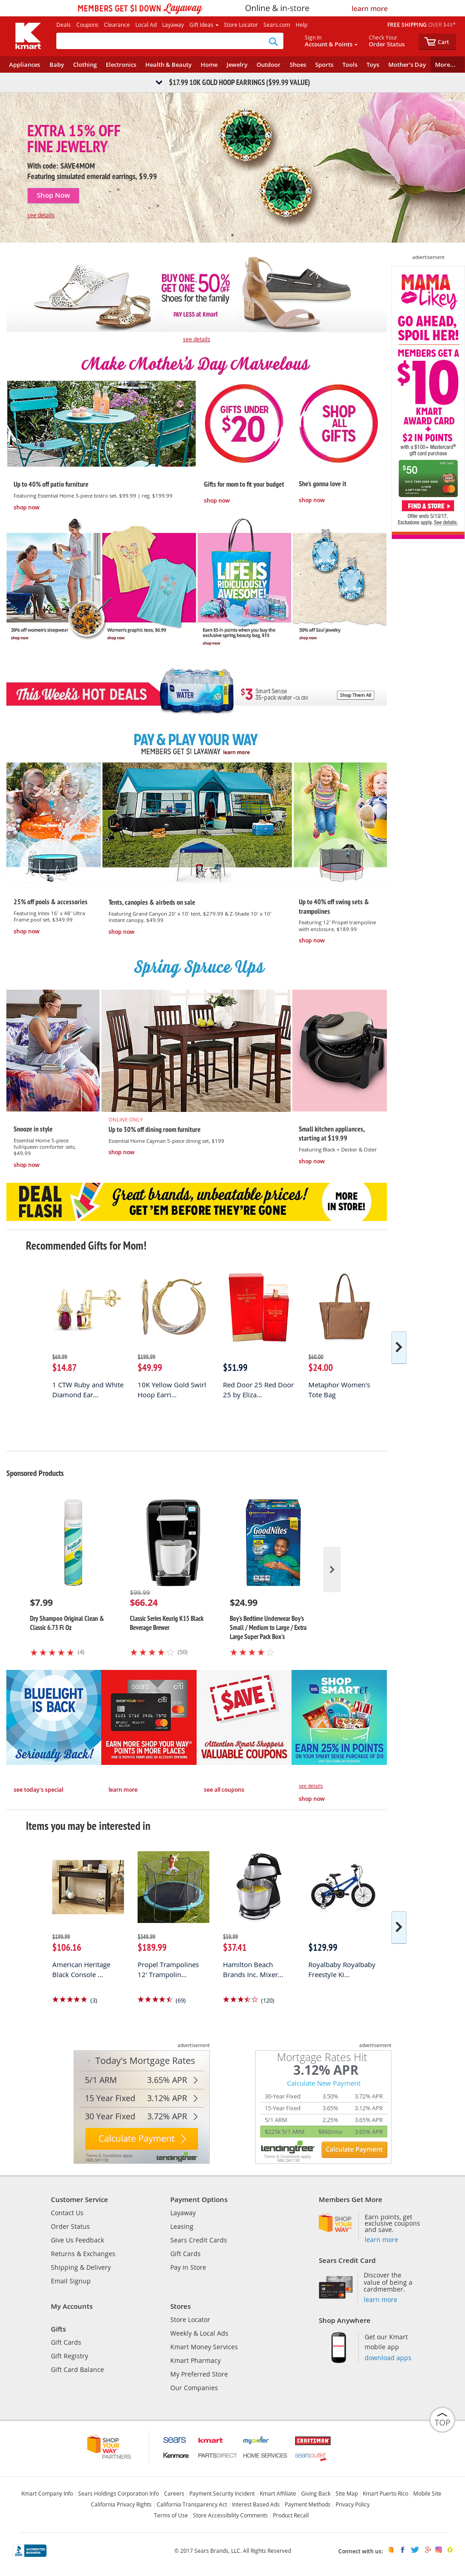 Kmart Competitors, Revenue and Employees - Owler Company Profile